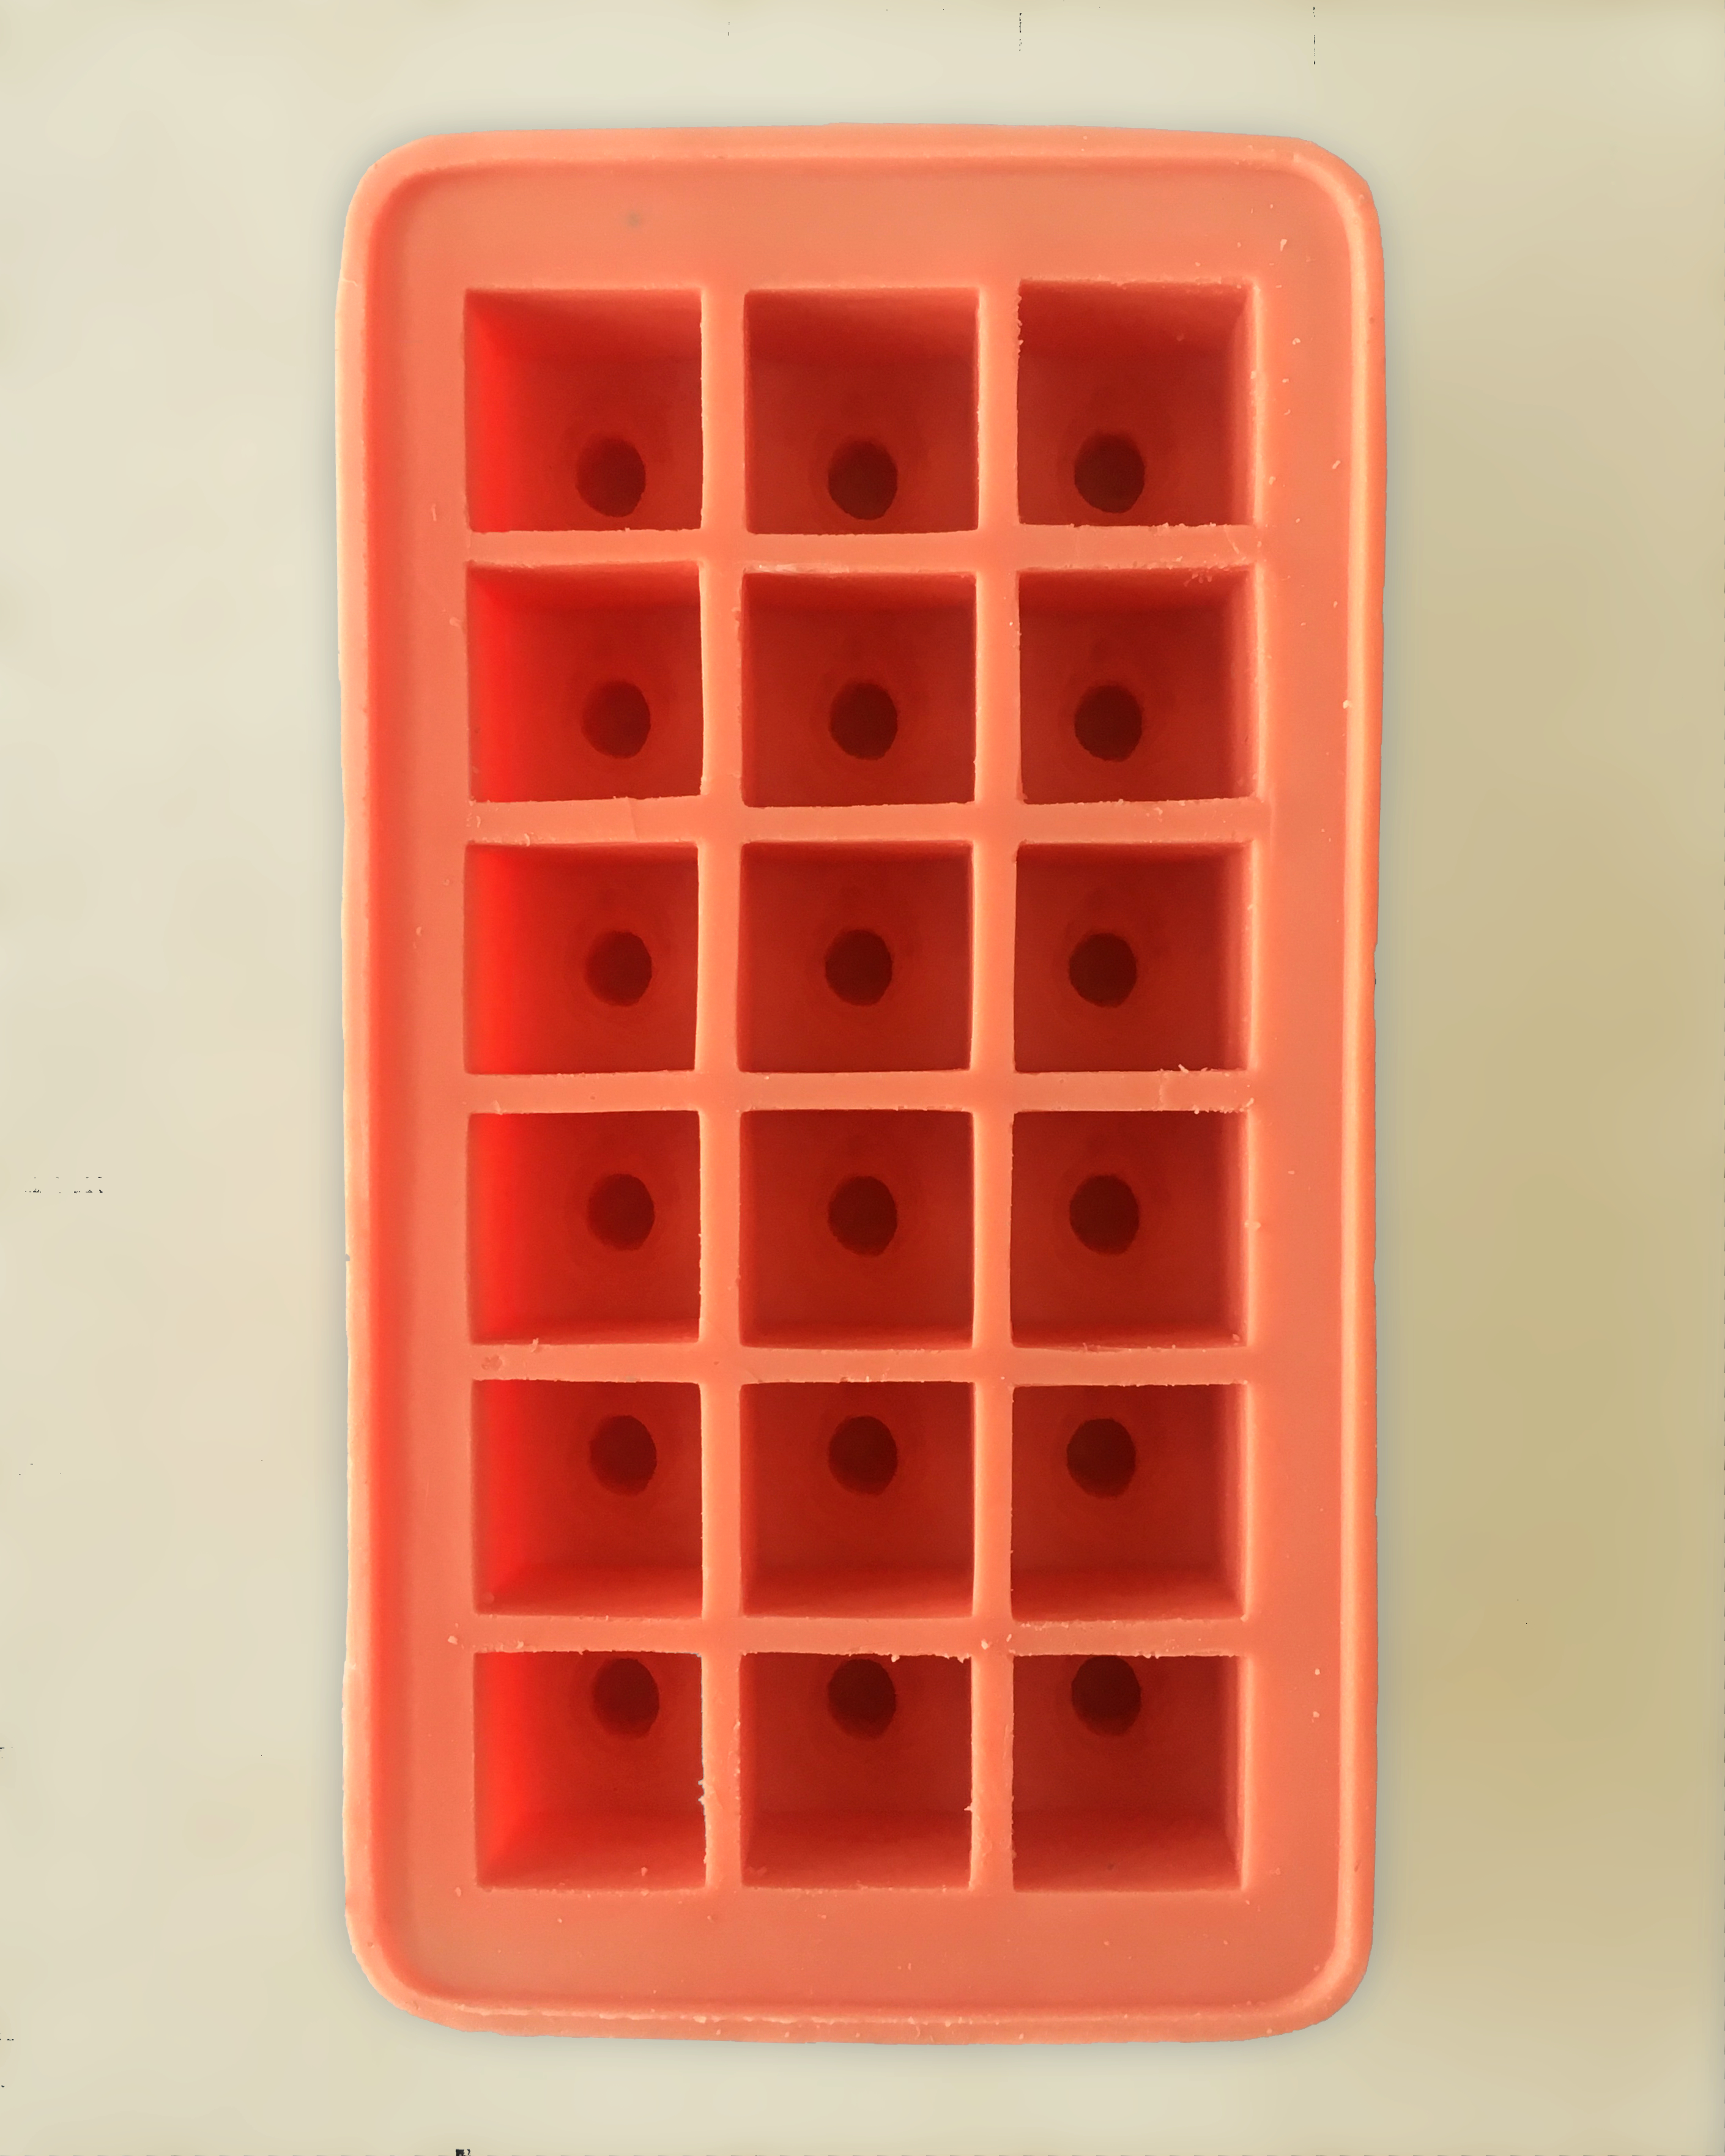 boobend - an ice cube tray, baking form or mold for pralines.